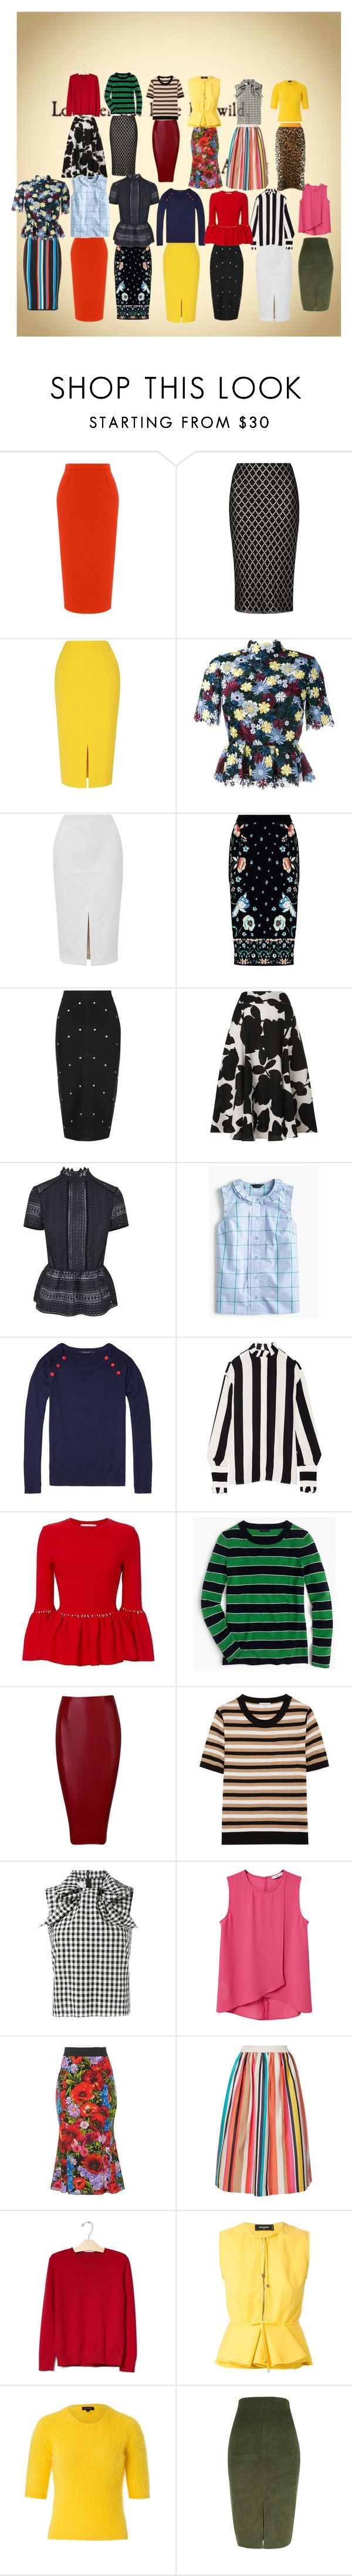 """The Office Hit List"" by xkaboq on Polyvore featuring Roland Mouret, Dorothy Perkins, Versace, Erdem, Ted Baker, Fenn Wright Manson, Topshop, Phase Eight, Perseverance London and J.Crew"